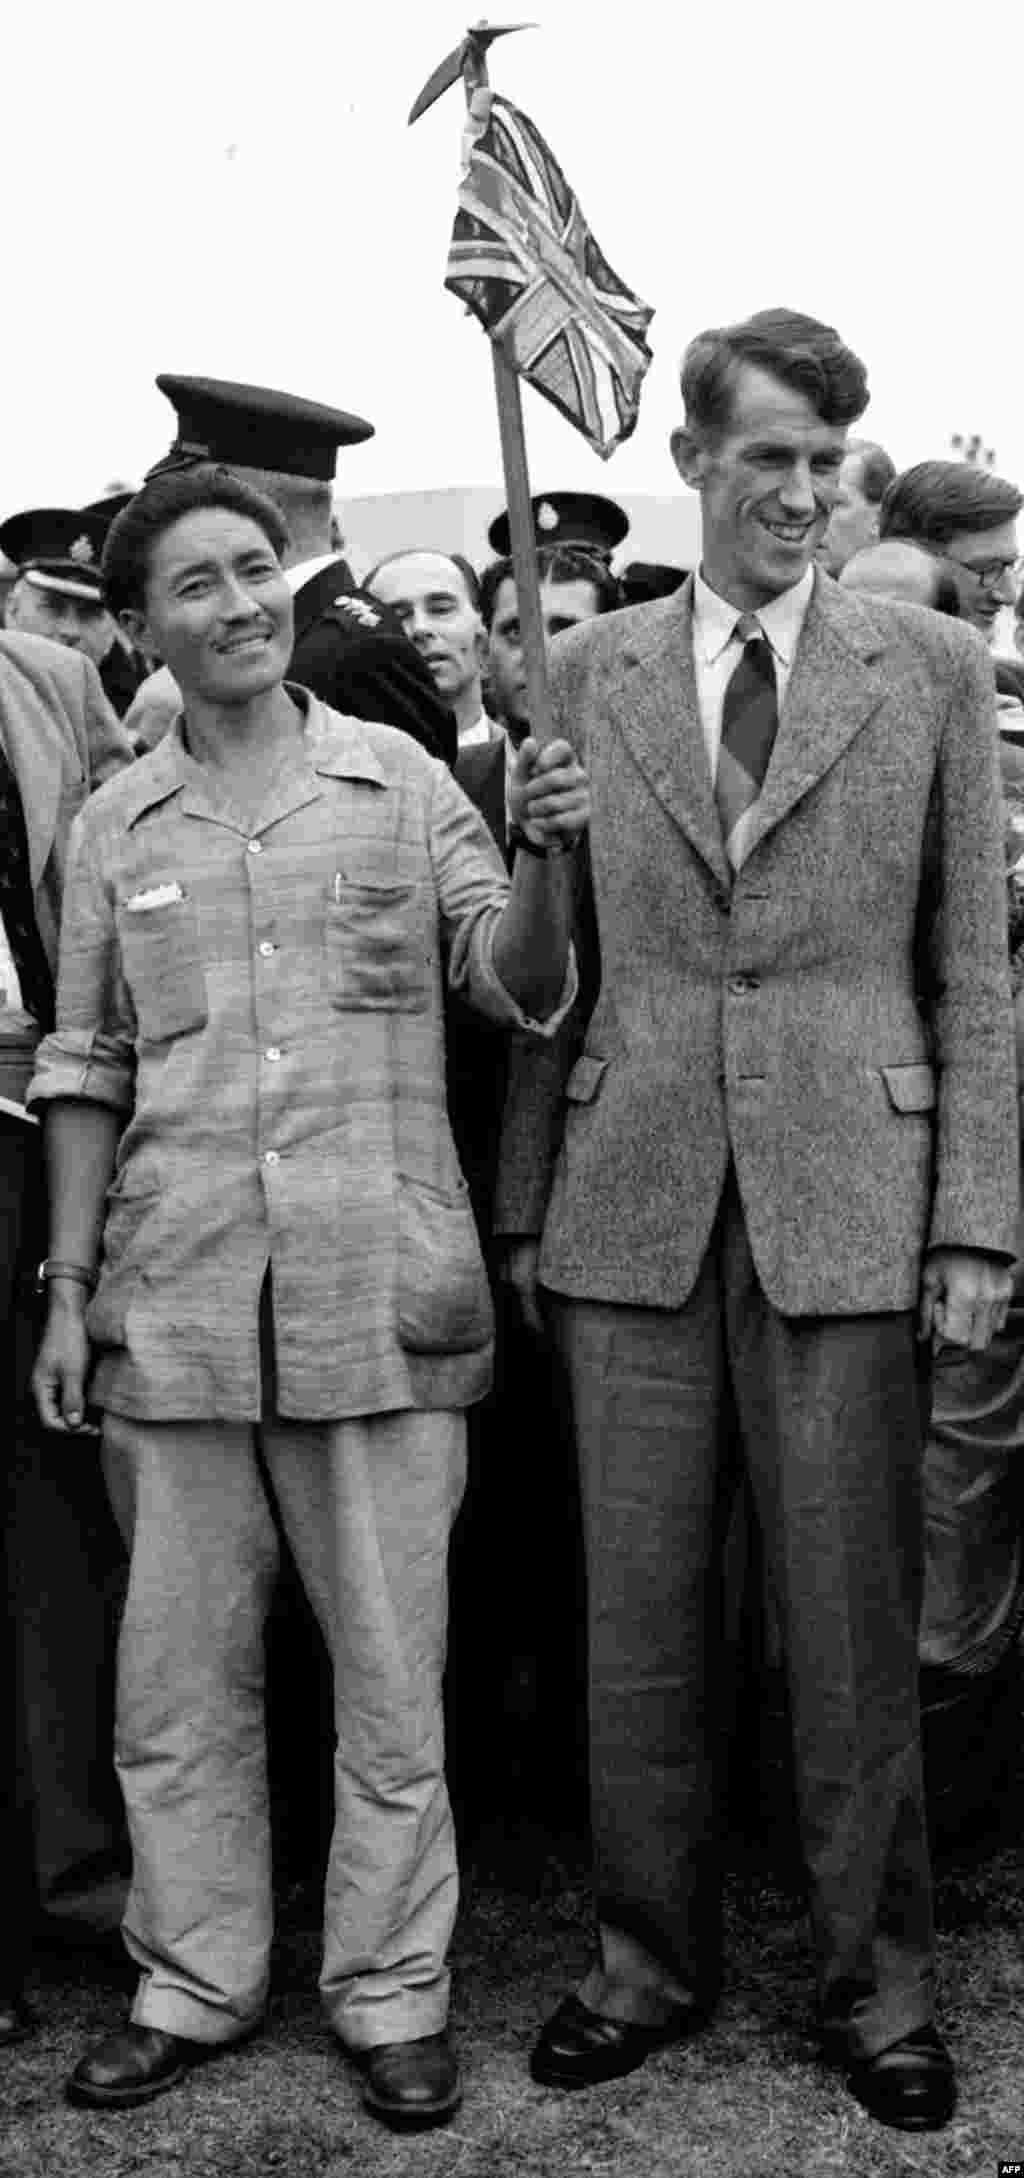 A photo from July 3, 1953, shows pioneering Mount Everest climbers Edmund Hillary of New Zealand and Tenzing Norgay of Nepal in London after their expedition.